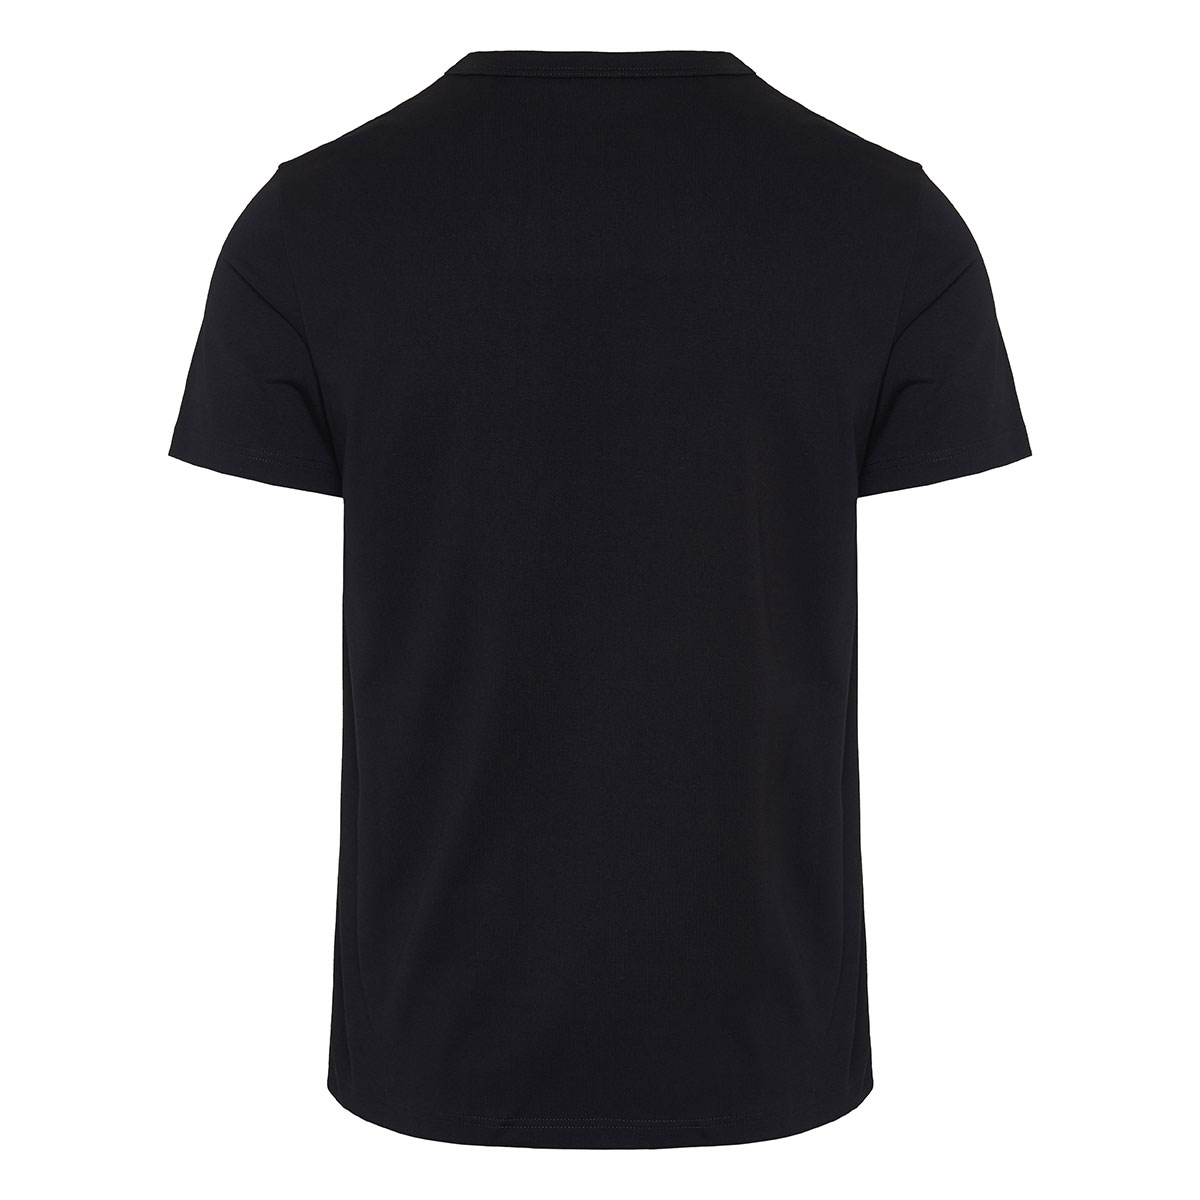 Skeleton embroidered cotton t-shirt